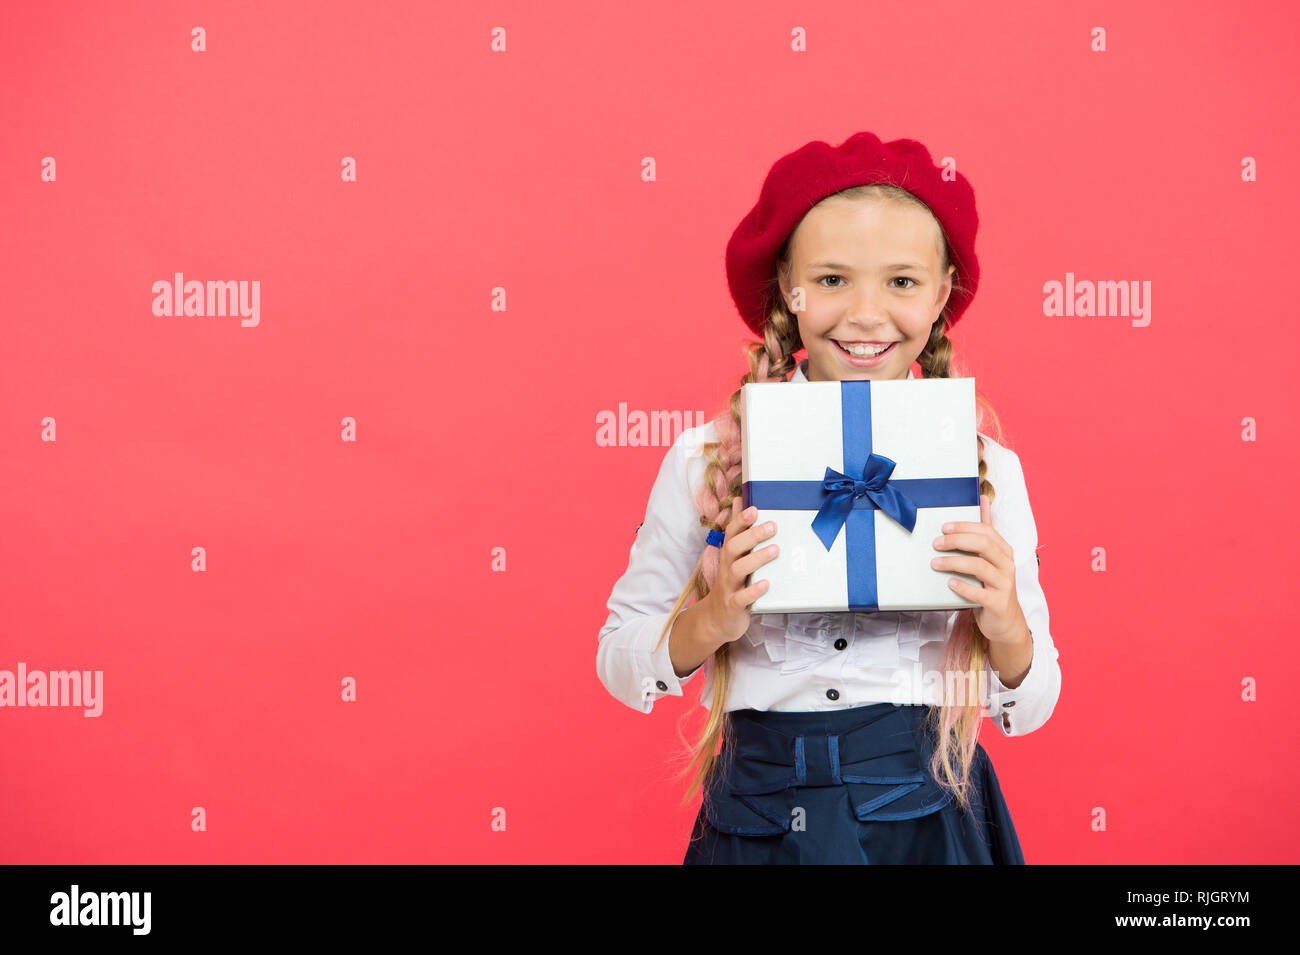 Birthday Wish List Happy Concept Girl Kid Hold Gift Box Every Dream About Such Surprise Carry Present With Ribbon